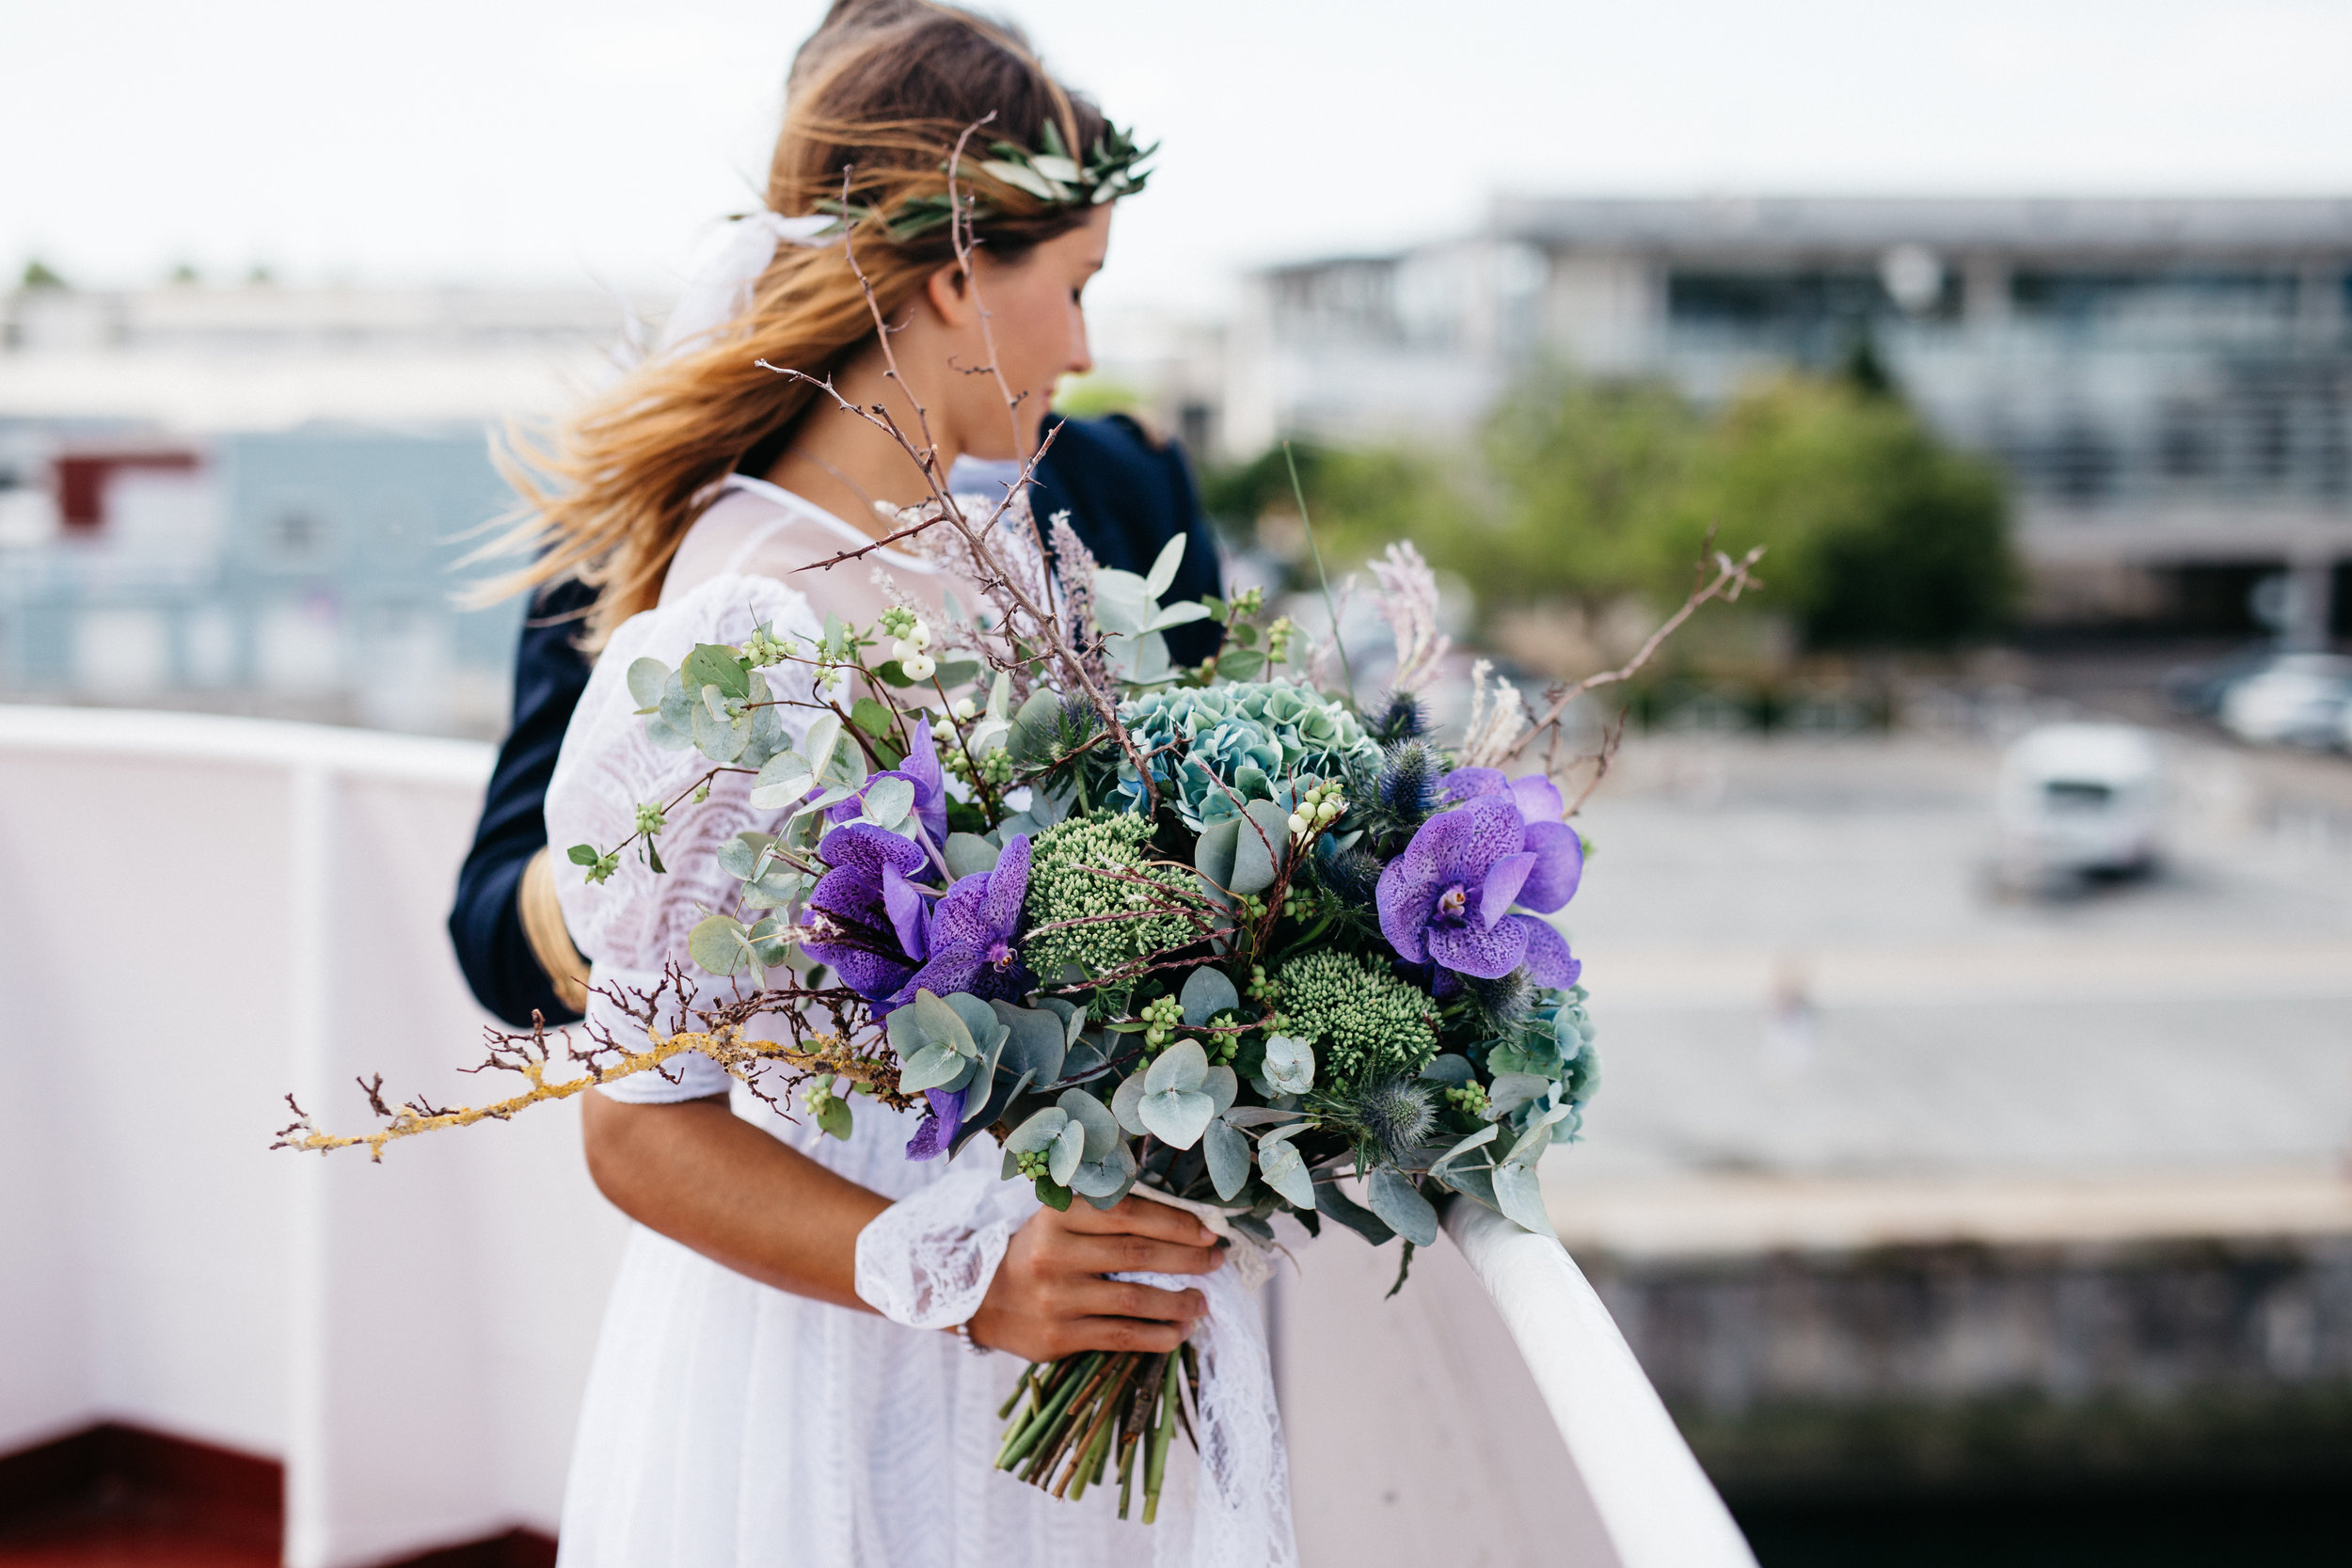 tips for an ethical wedding that gives back